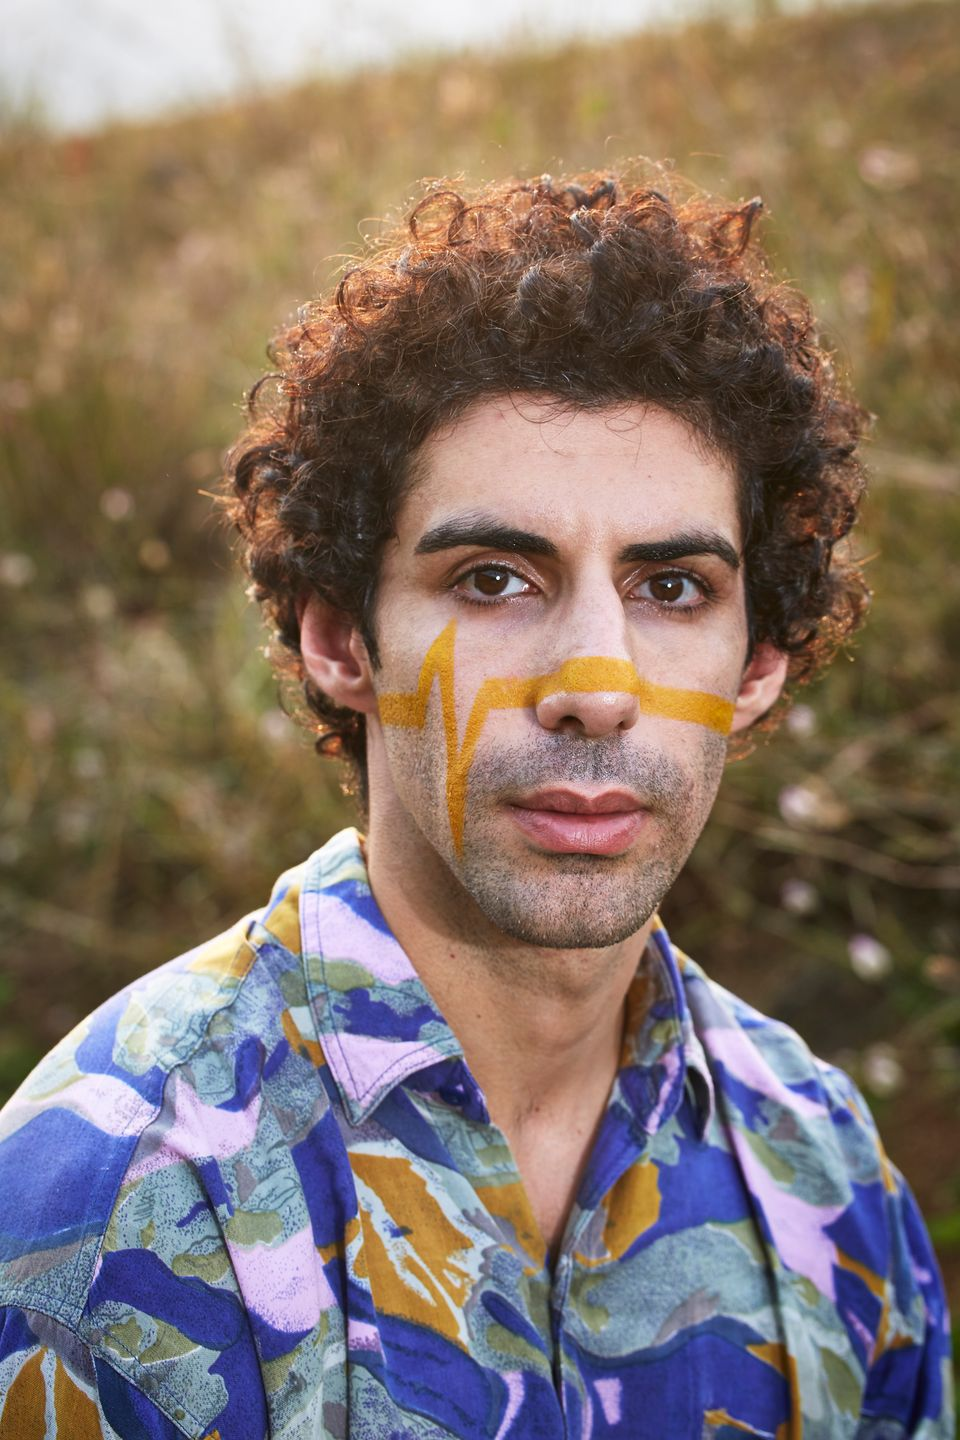 Photography series by Khushboo jain featuring jim sarbh for currentMood magazine